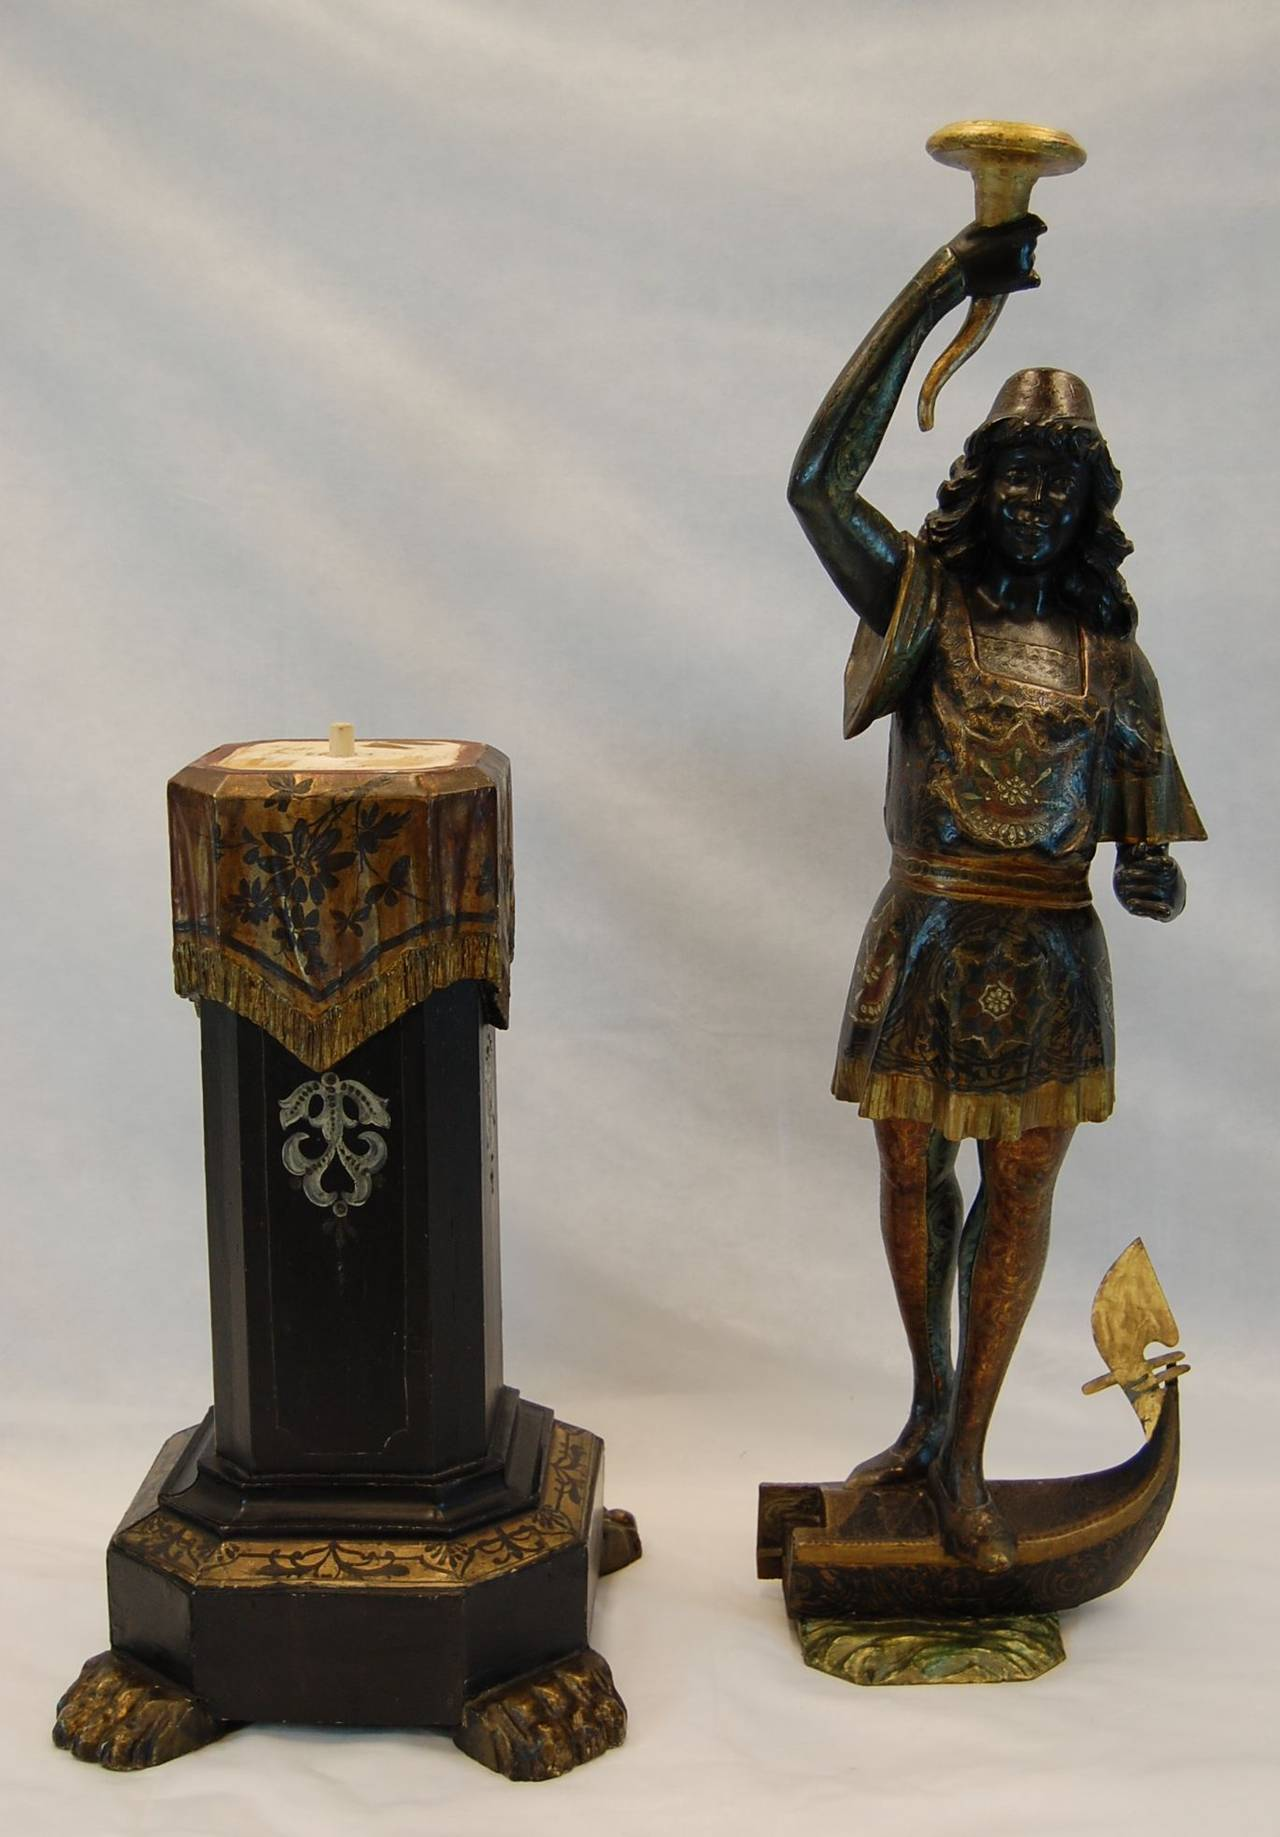 19th Century Carved and Polychromed Venetian Figure on Gondola Base For Sale 2